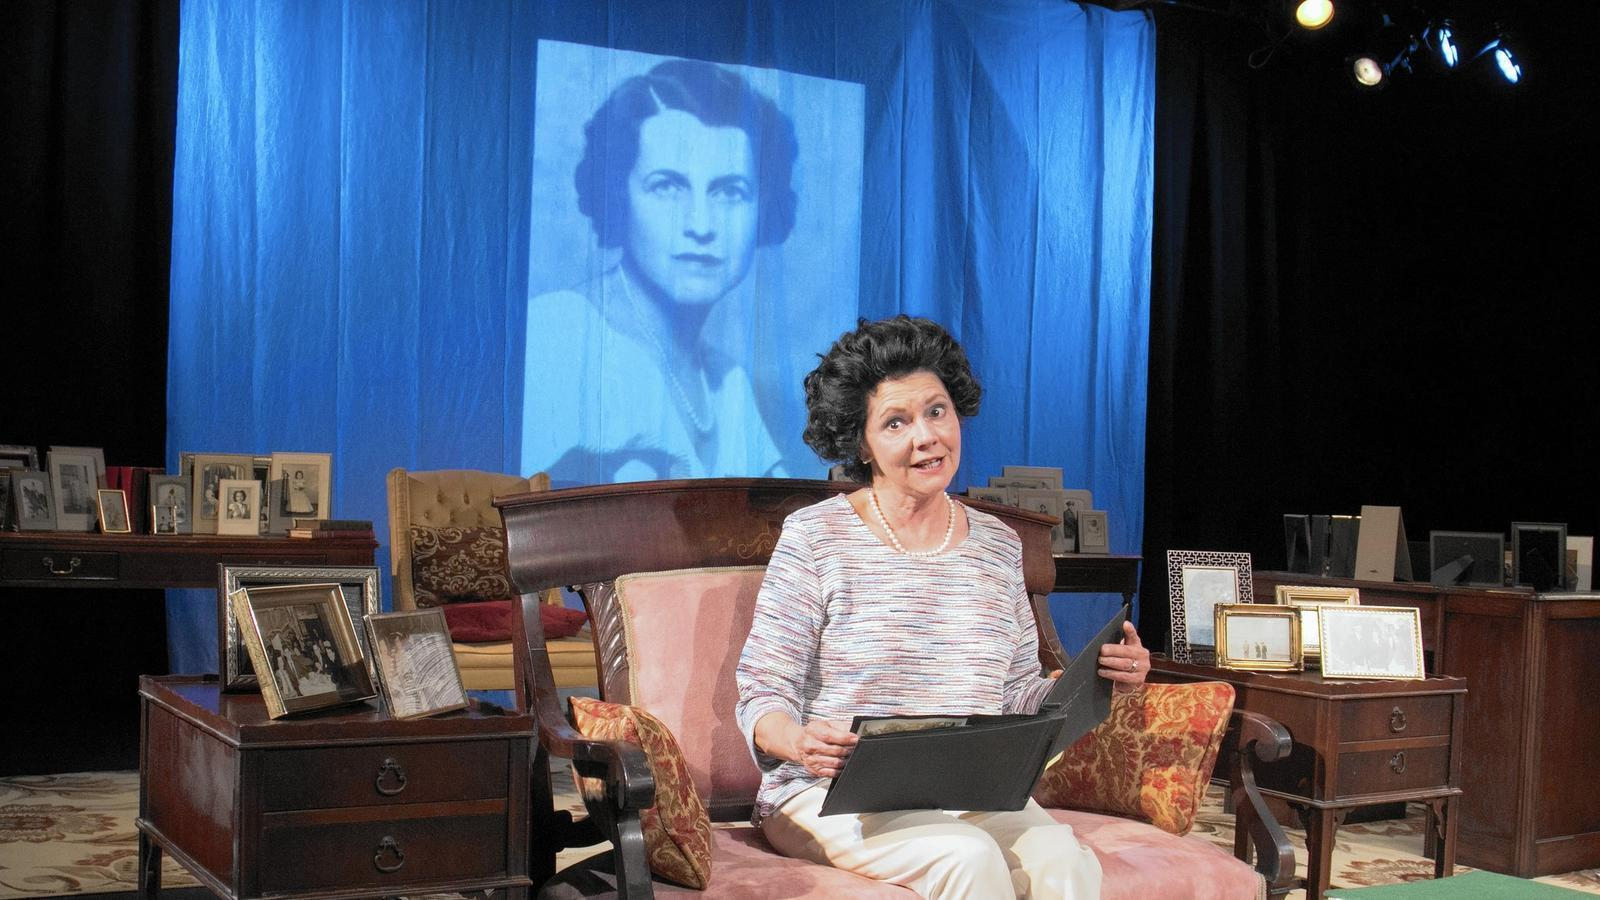 Life Alert Reviews >> In revelatory 'Rose,' opening the curtains on Kennedy ...